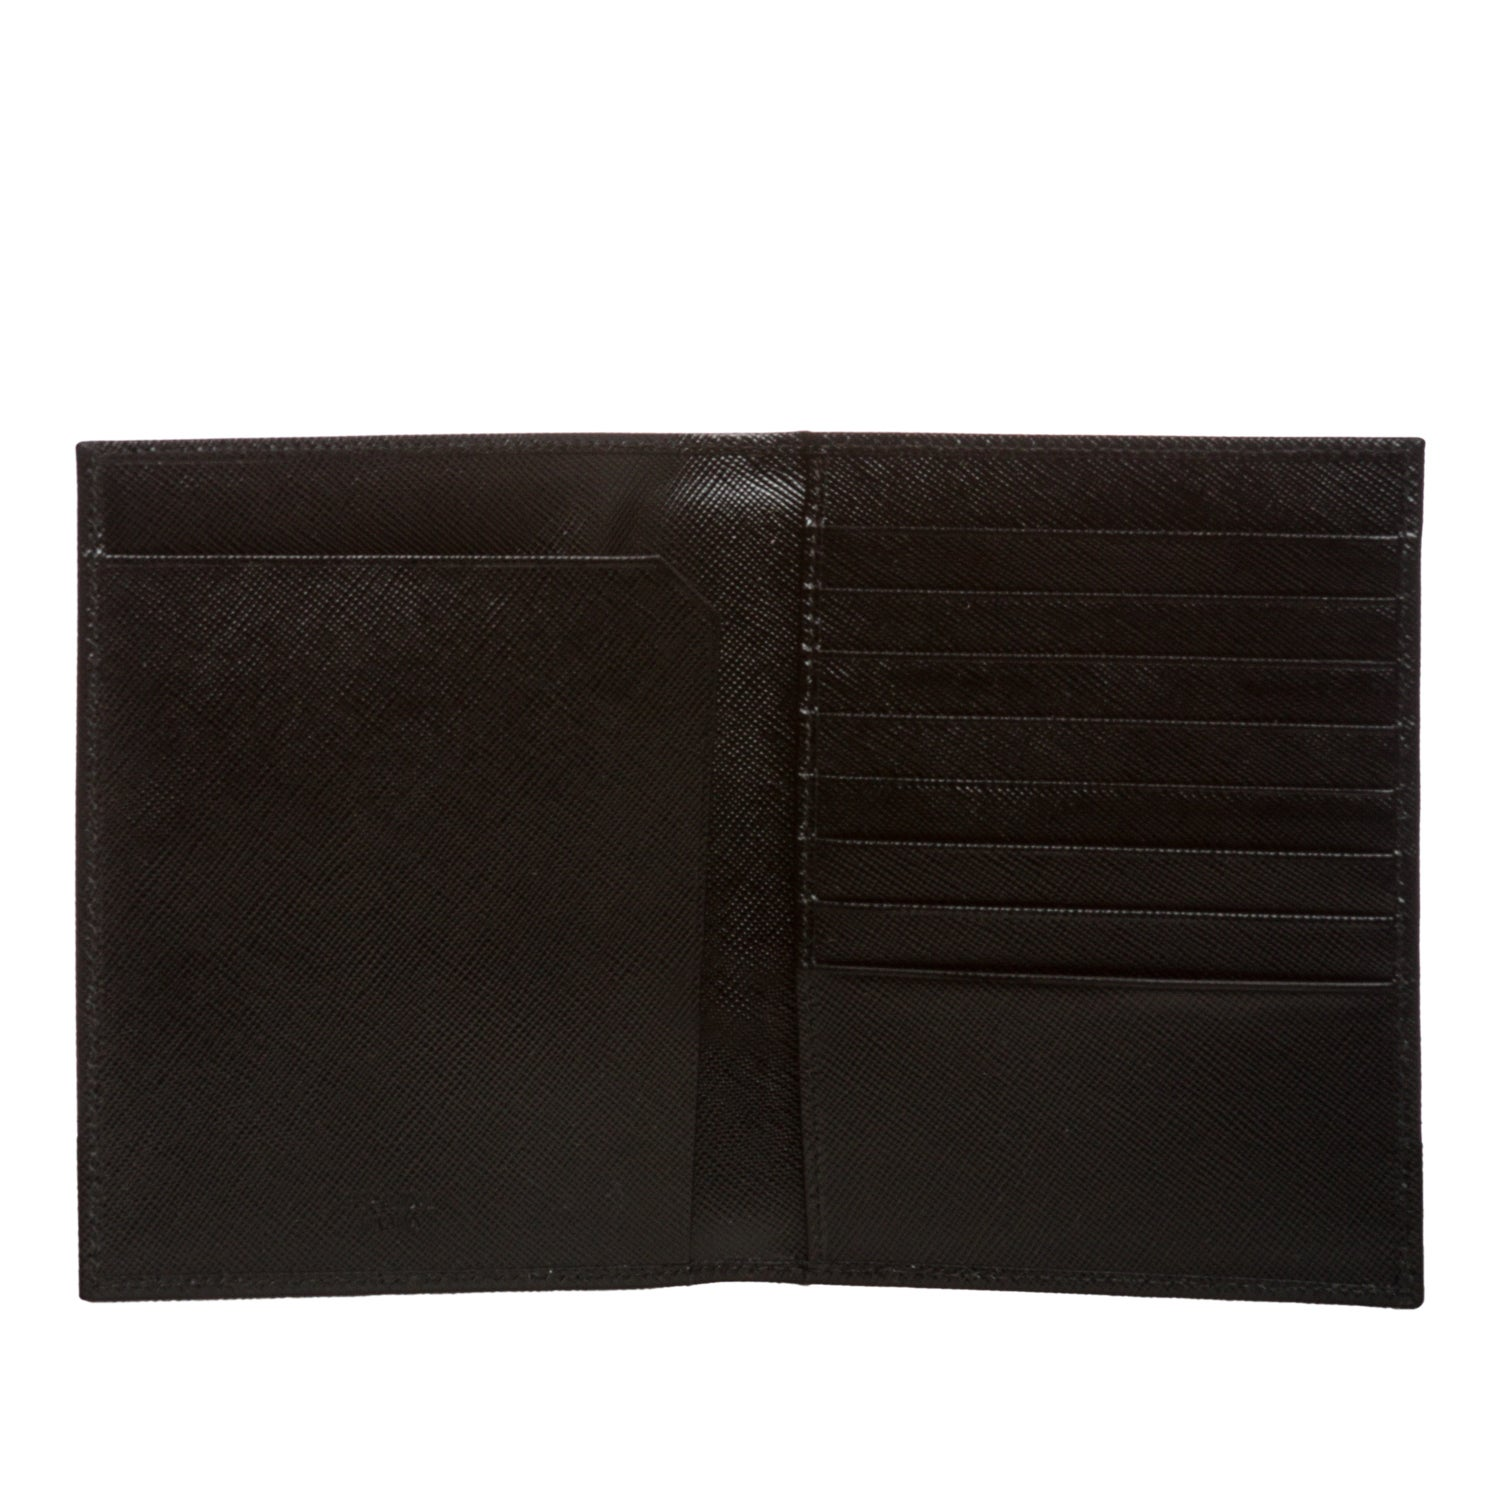 605513af2255 Shop Prada Saffiano Leather Travel Wallet - Free Shipping Today - Overstock  - 8107804